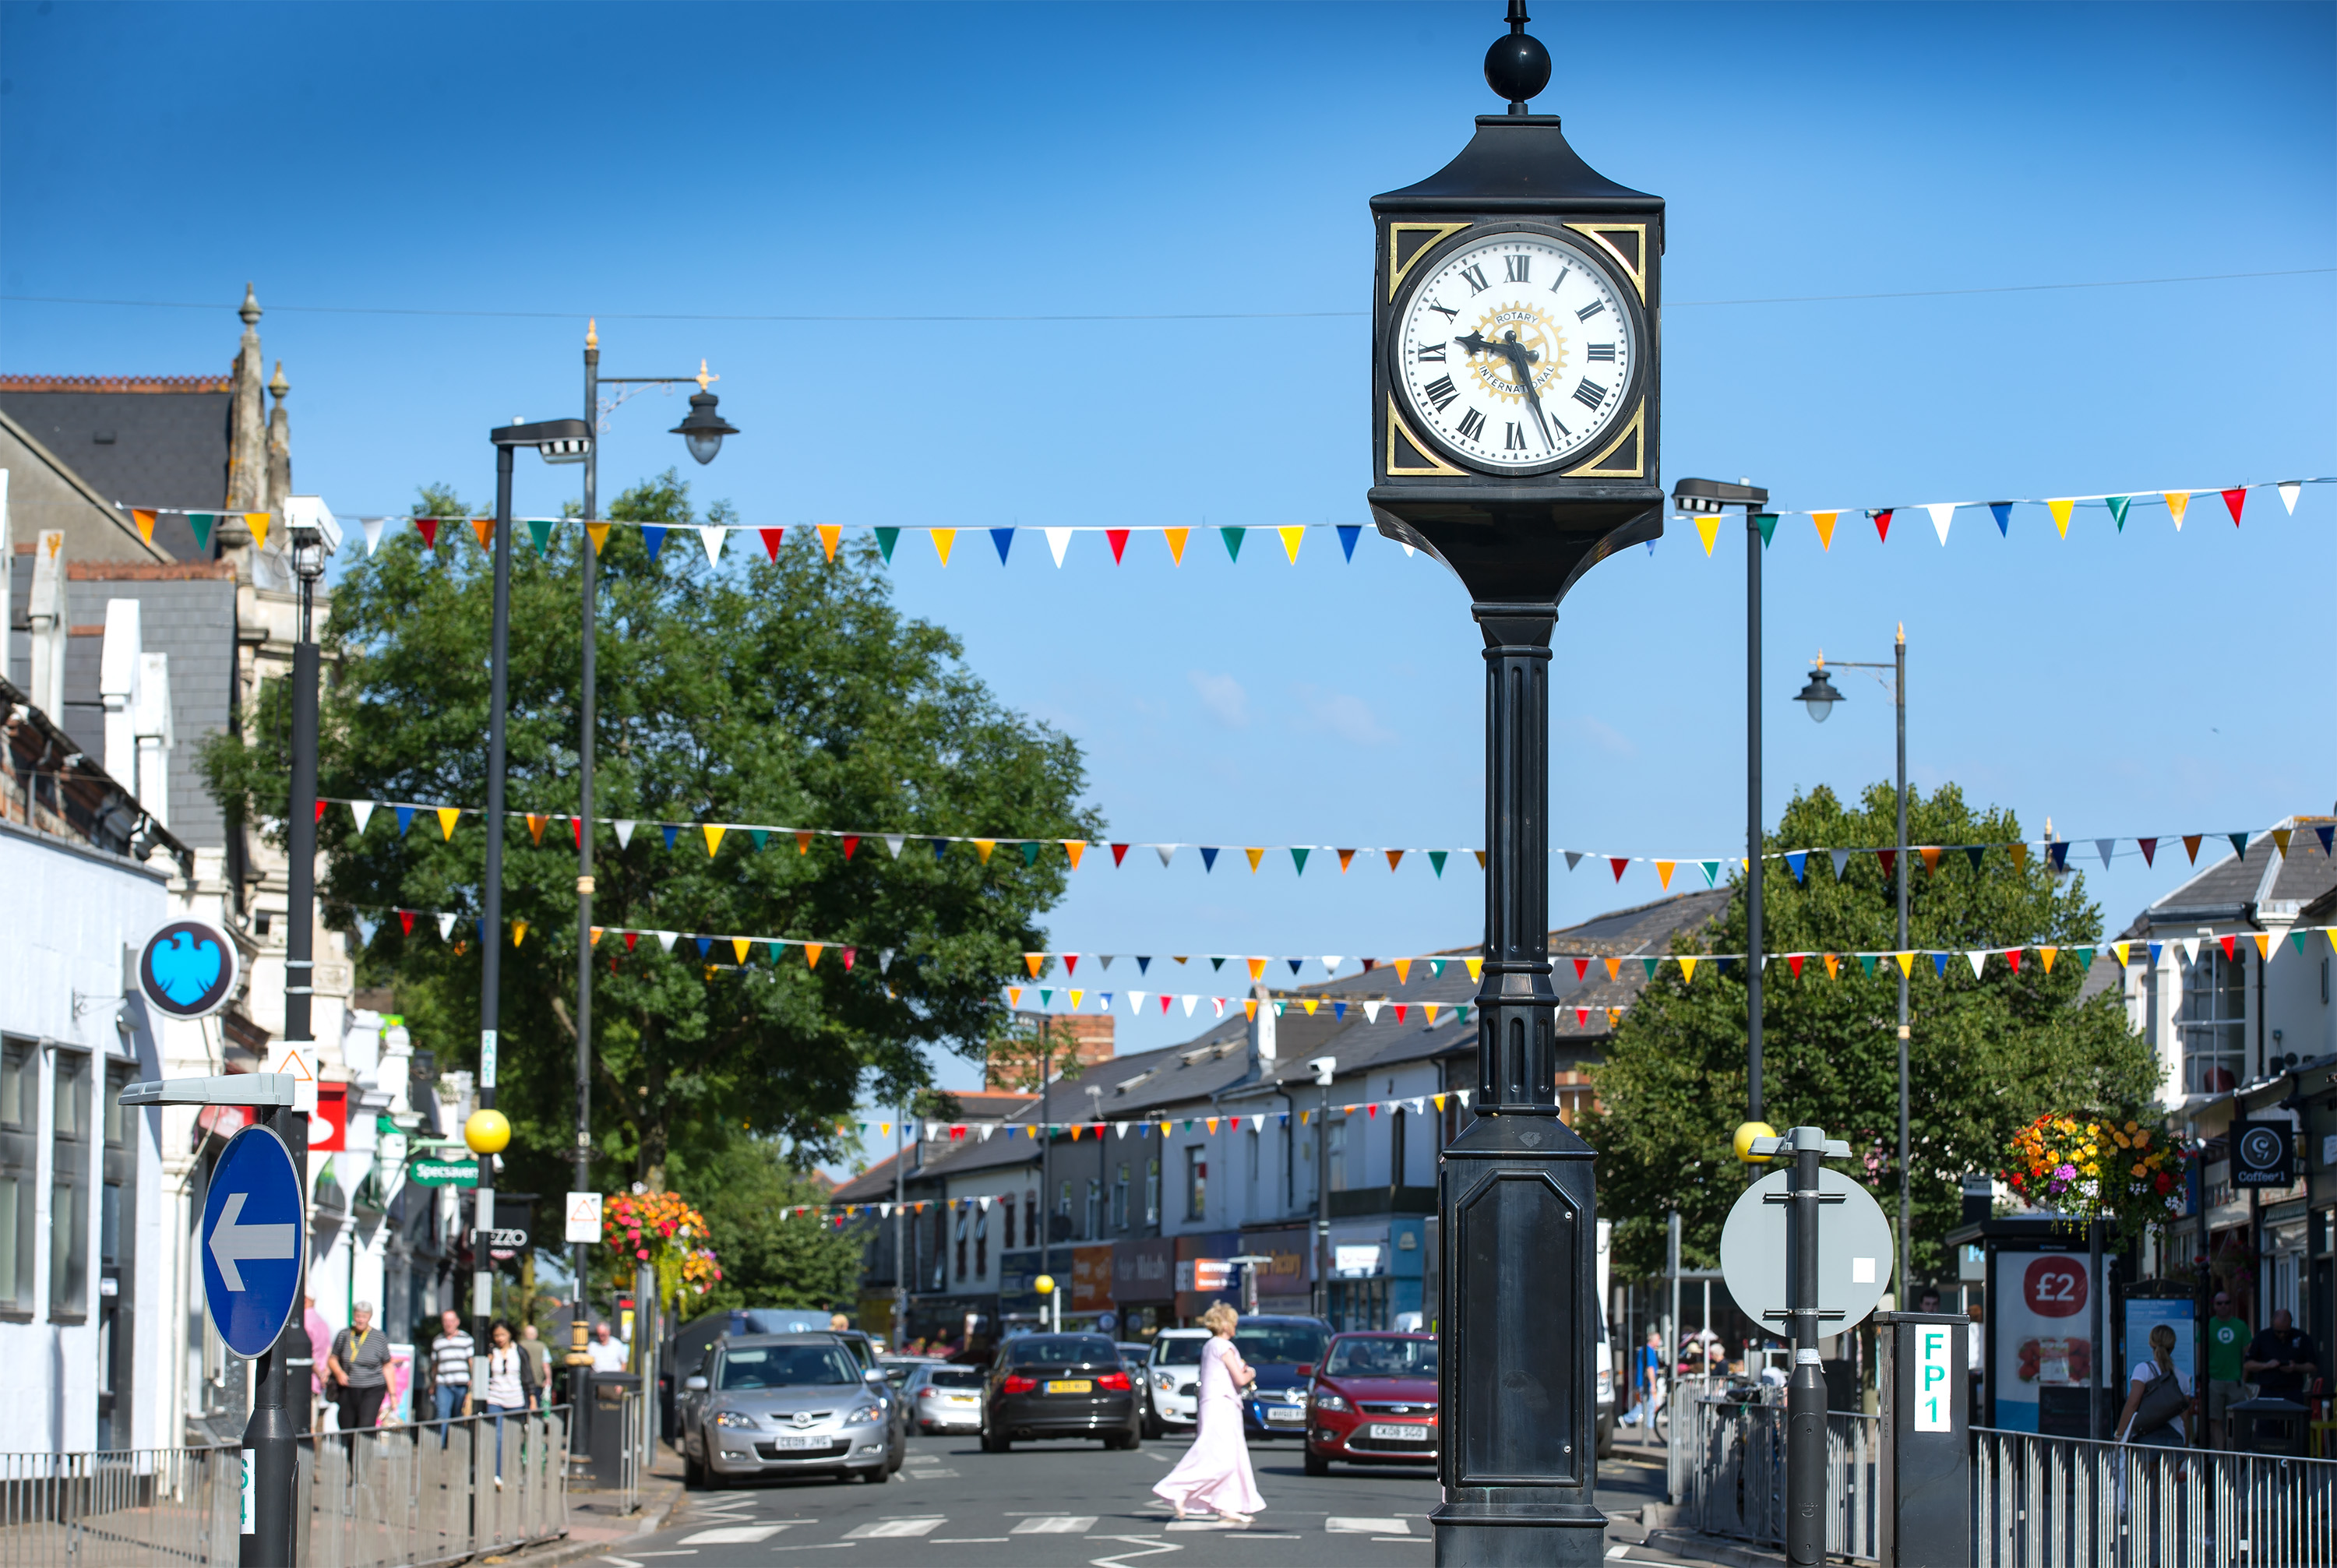 Penarth: a great shopping destination